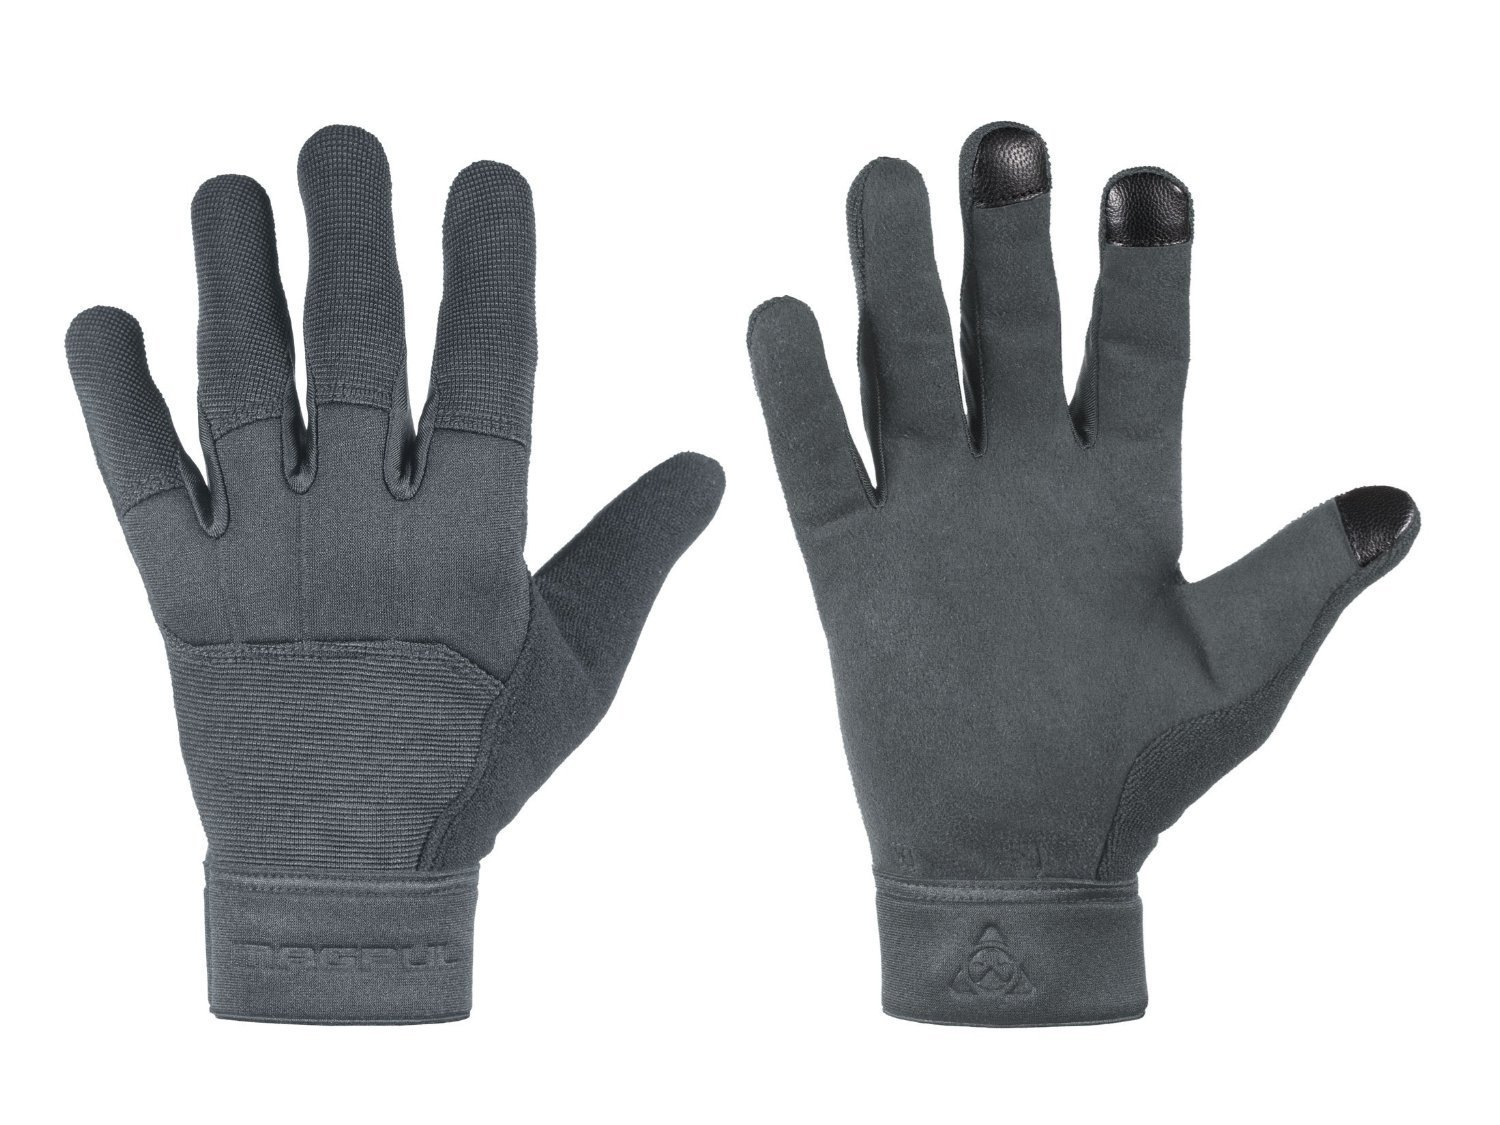 Mens leather driving gloves ireland - Magpul Industries Technical Gloves